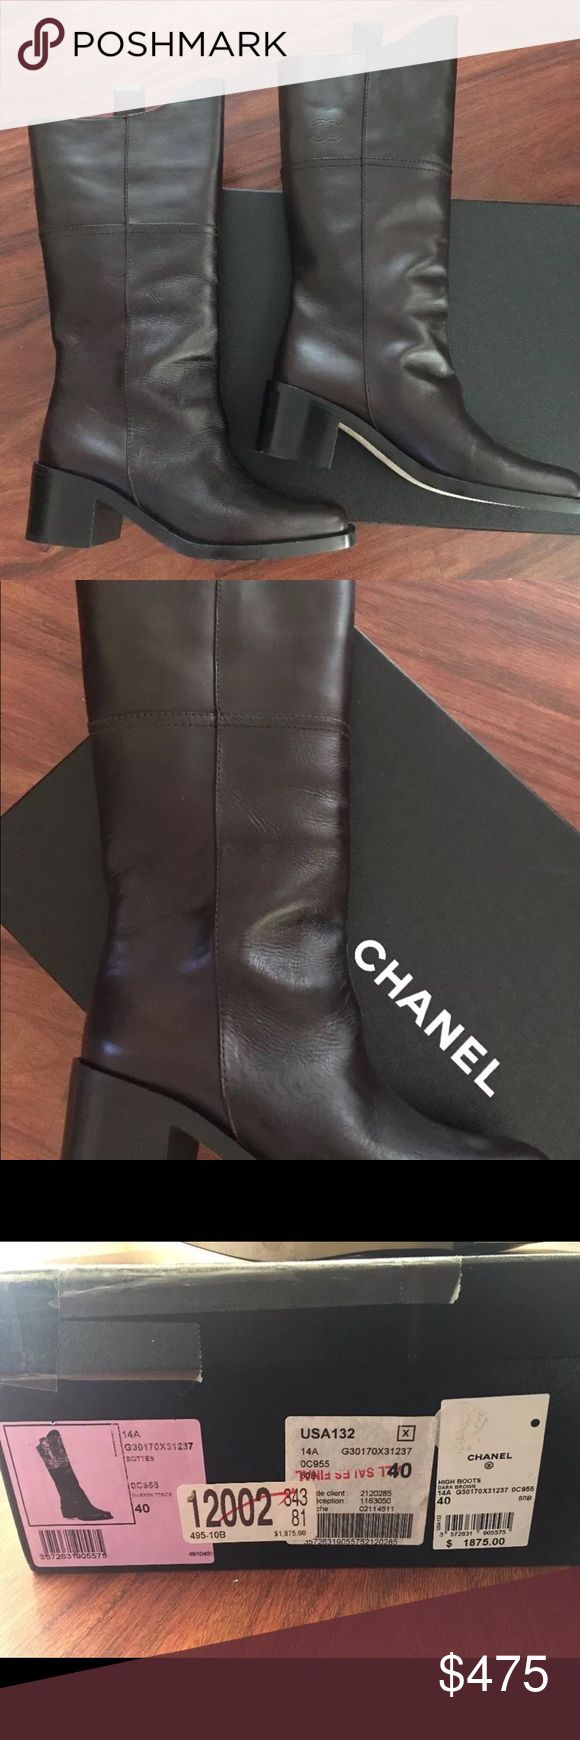 Chanel Paris Dallas High Dark Brown Leather Boots Brand new in box.  The textures are bit different but should even out more with wear.  Size states 40 but these run about half size smaller so US 9 will fit best.  Original price of $1895 CHANEL Shoes Heeled Boots